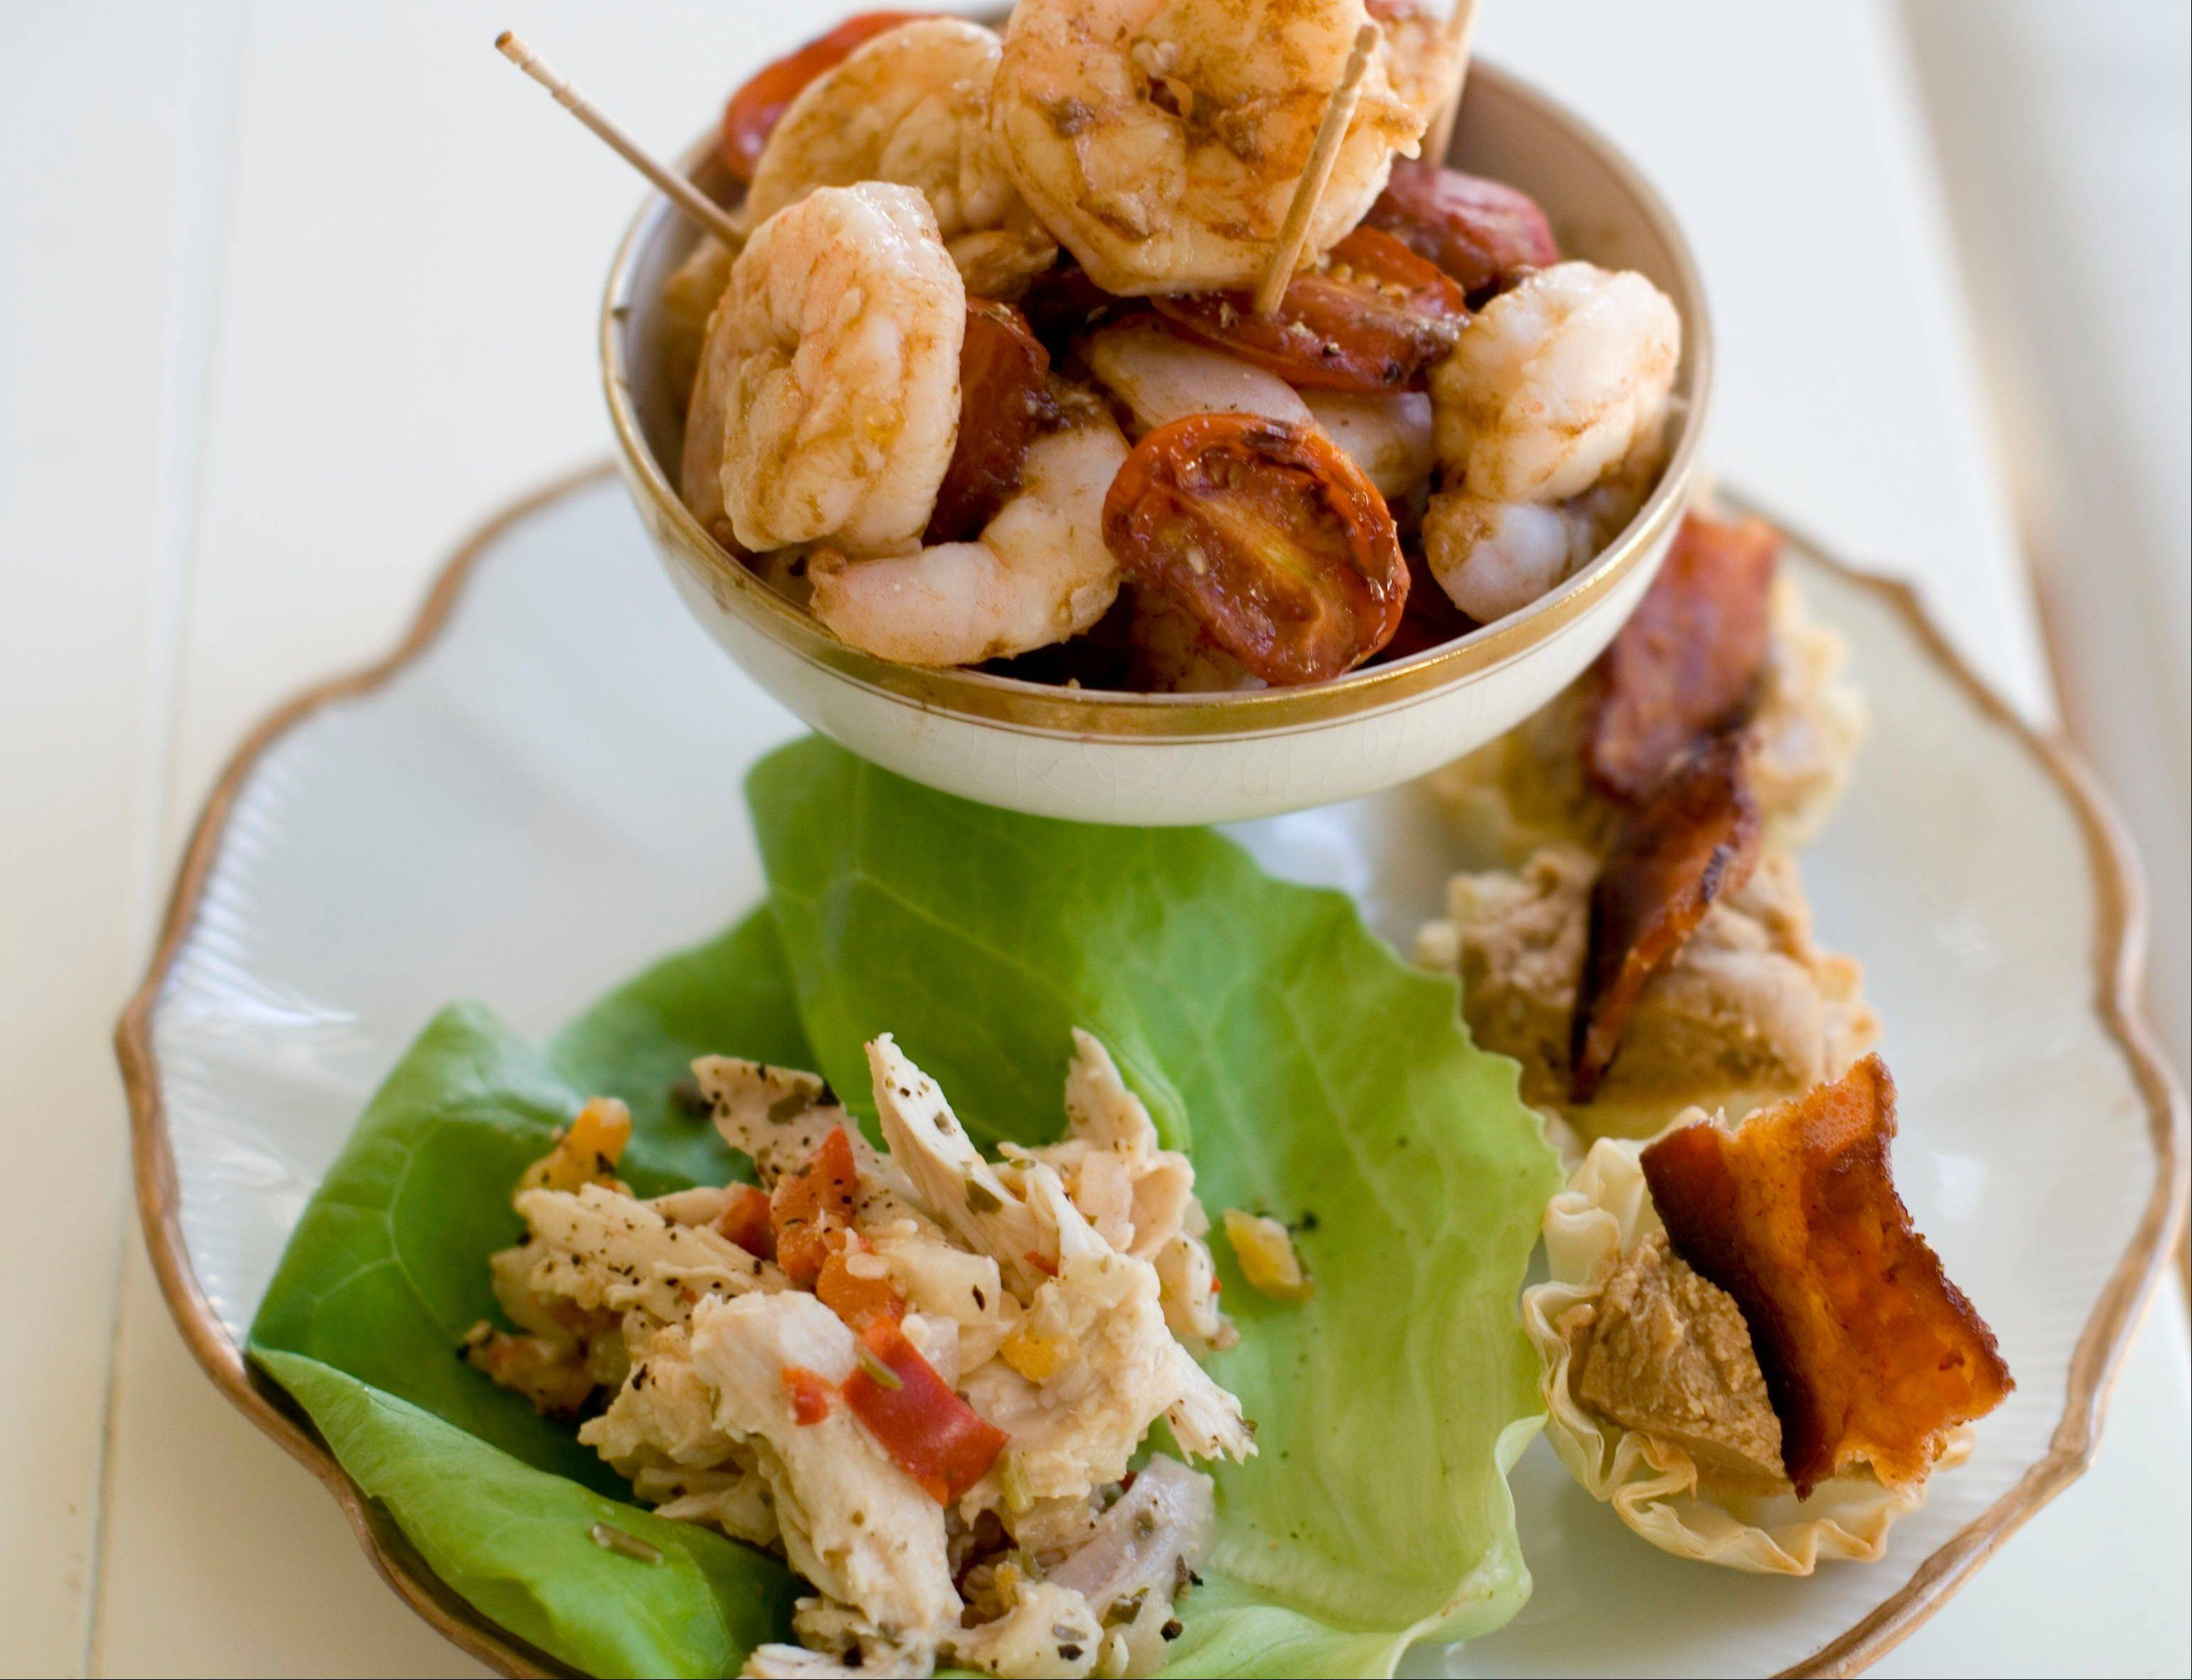 For New Year's Eve noshing try roasted shrimp cocktail, pineapple chicken lettuce wraps, and Elvis phyllo cups.